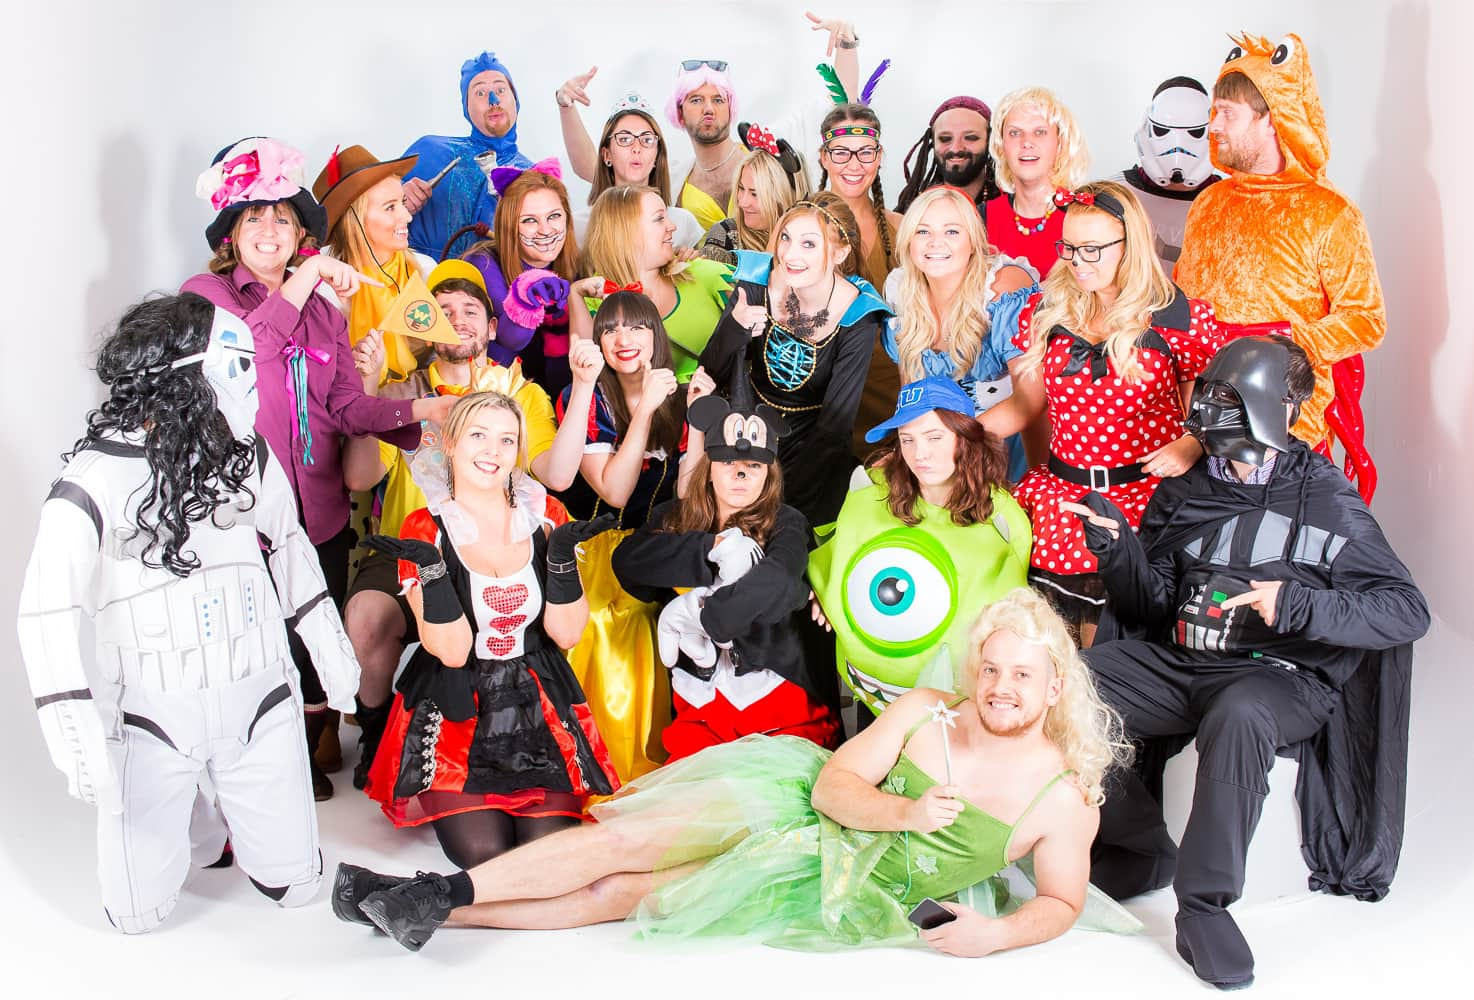 The LNOF team pulling funny poses as they have a group shot in their Disney outfits